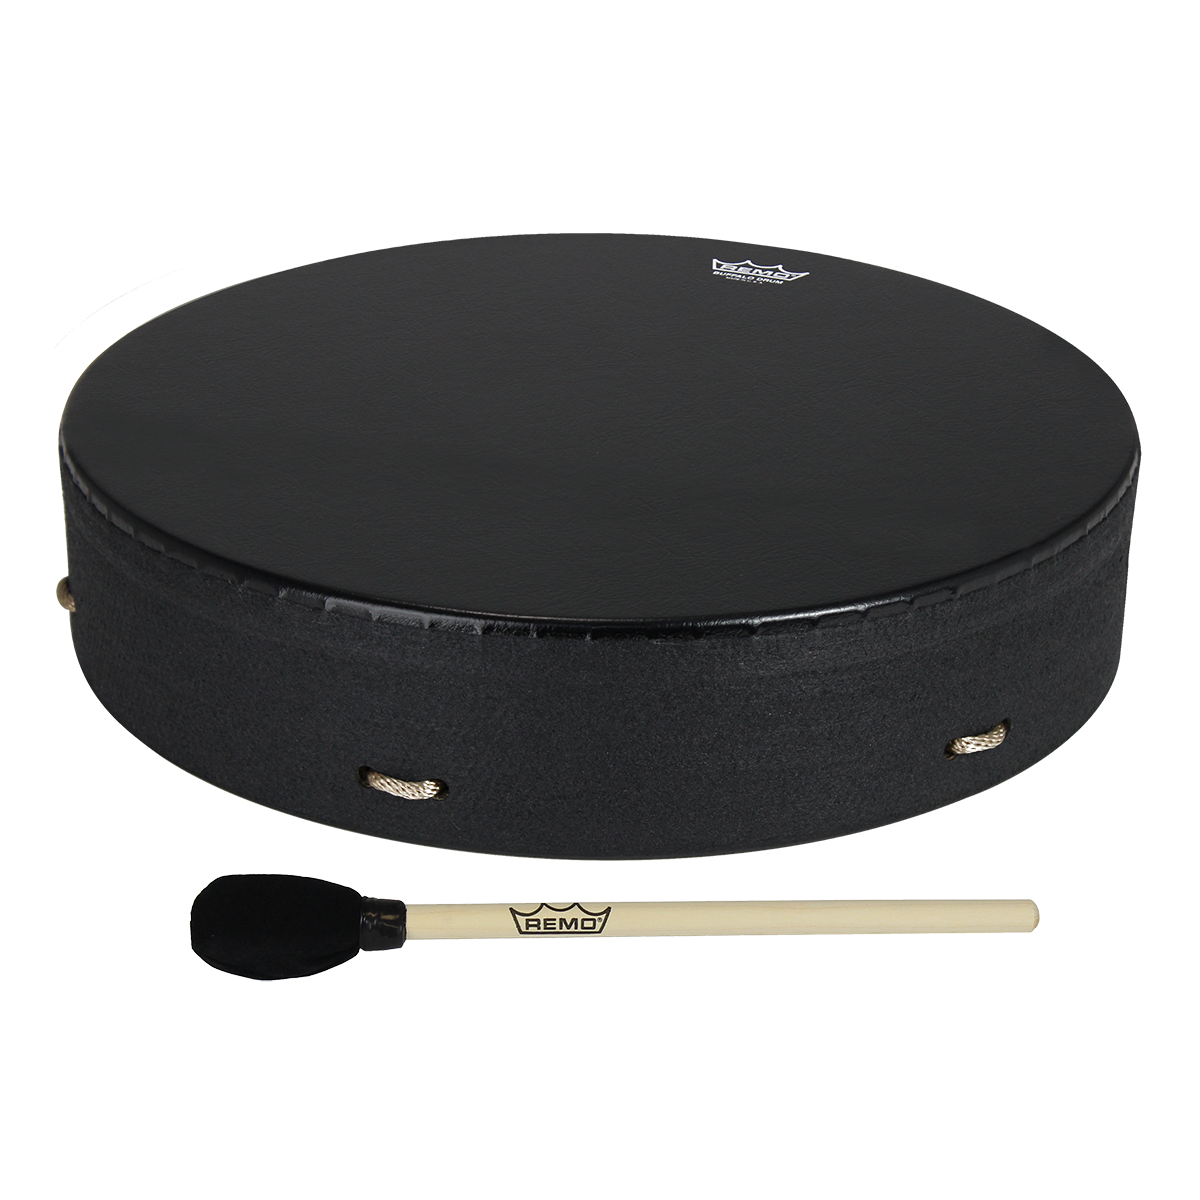 REMO BUFFALO DRUM 16-BY-3.5-INCH